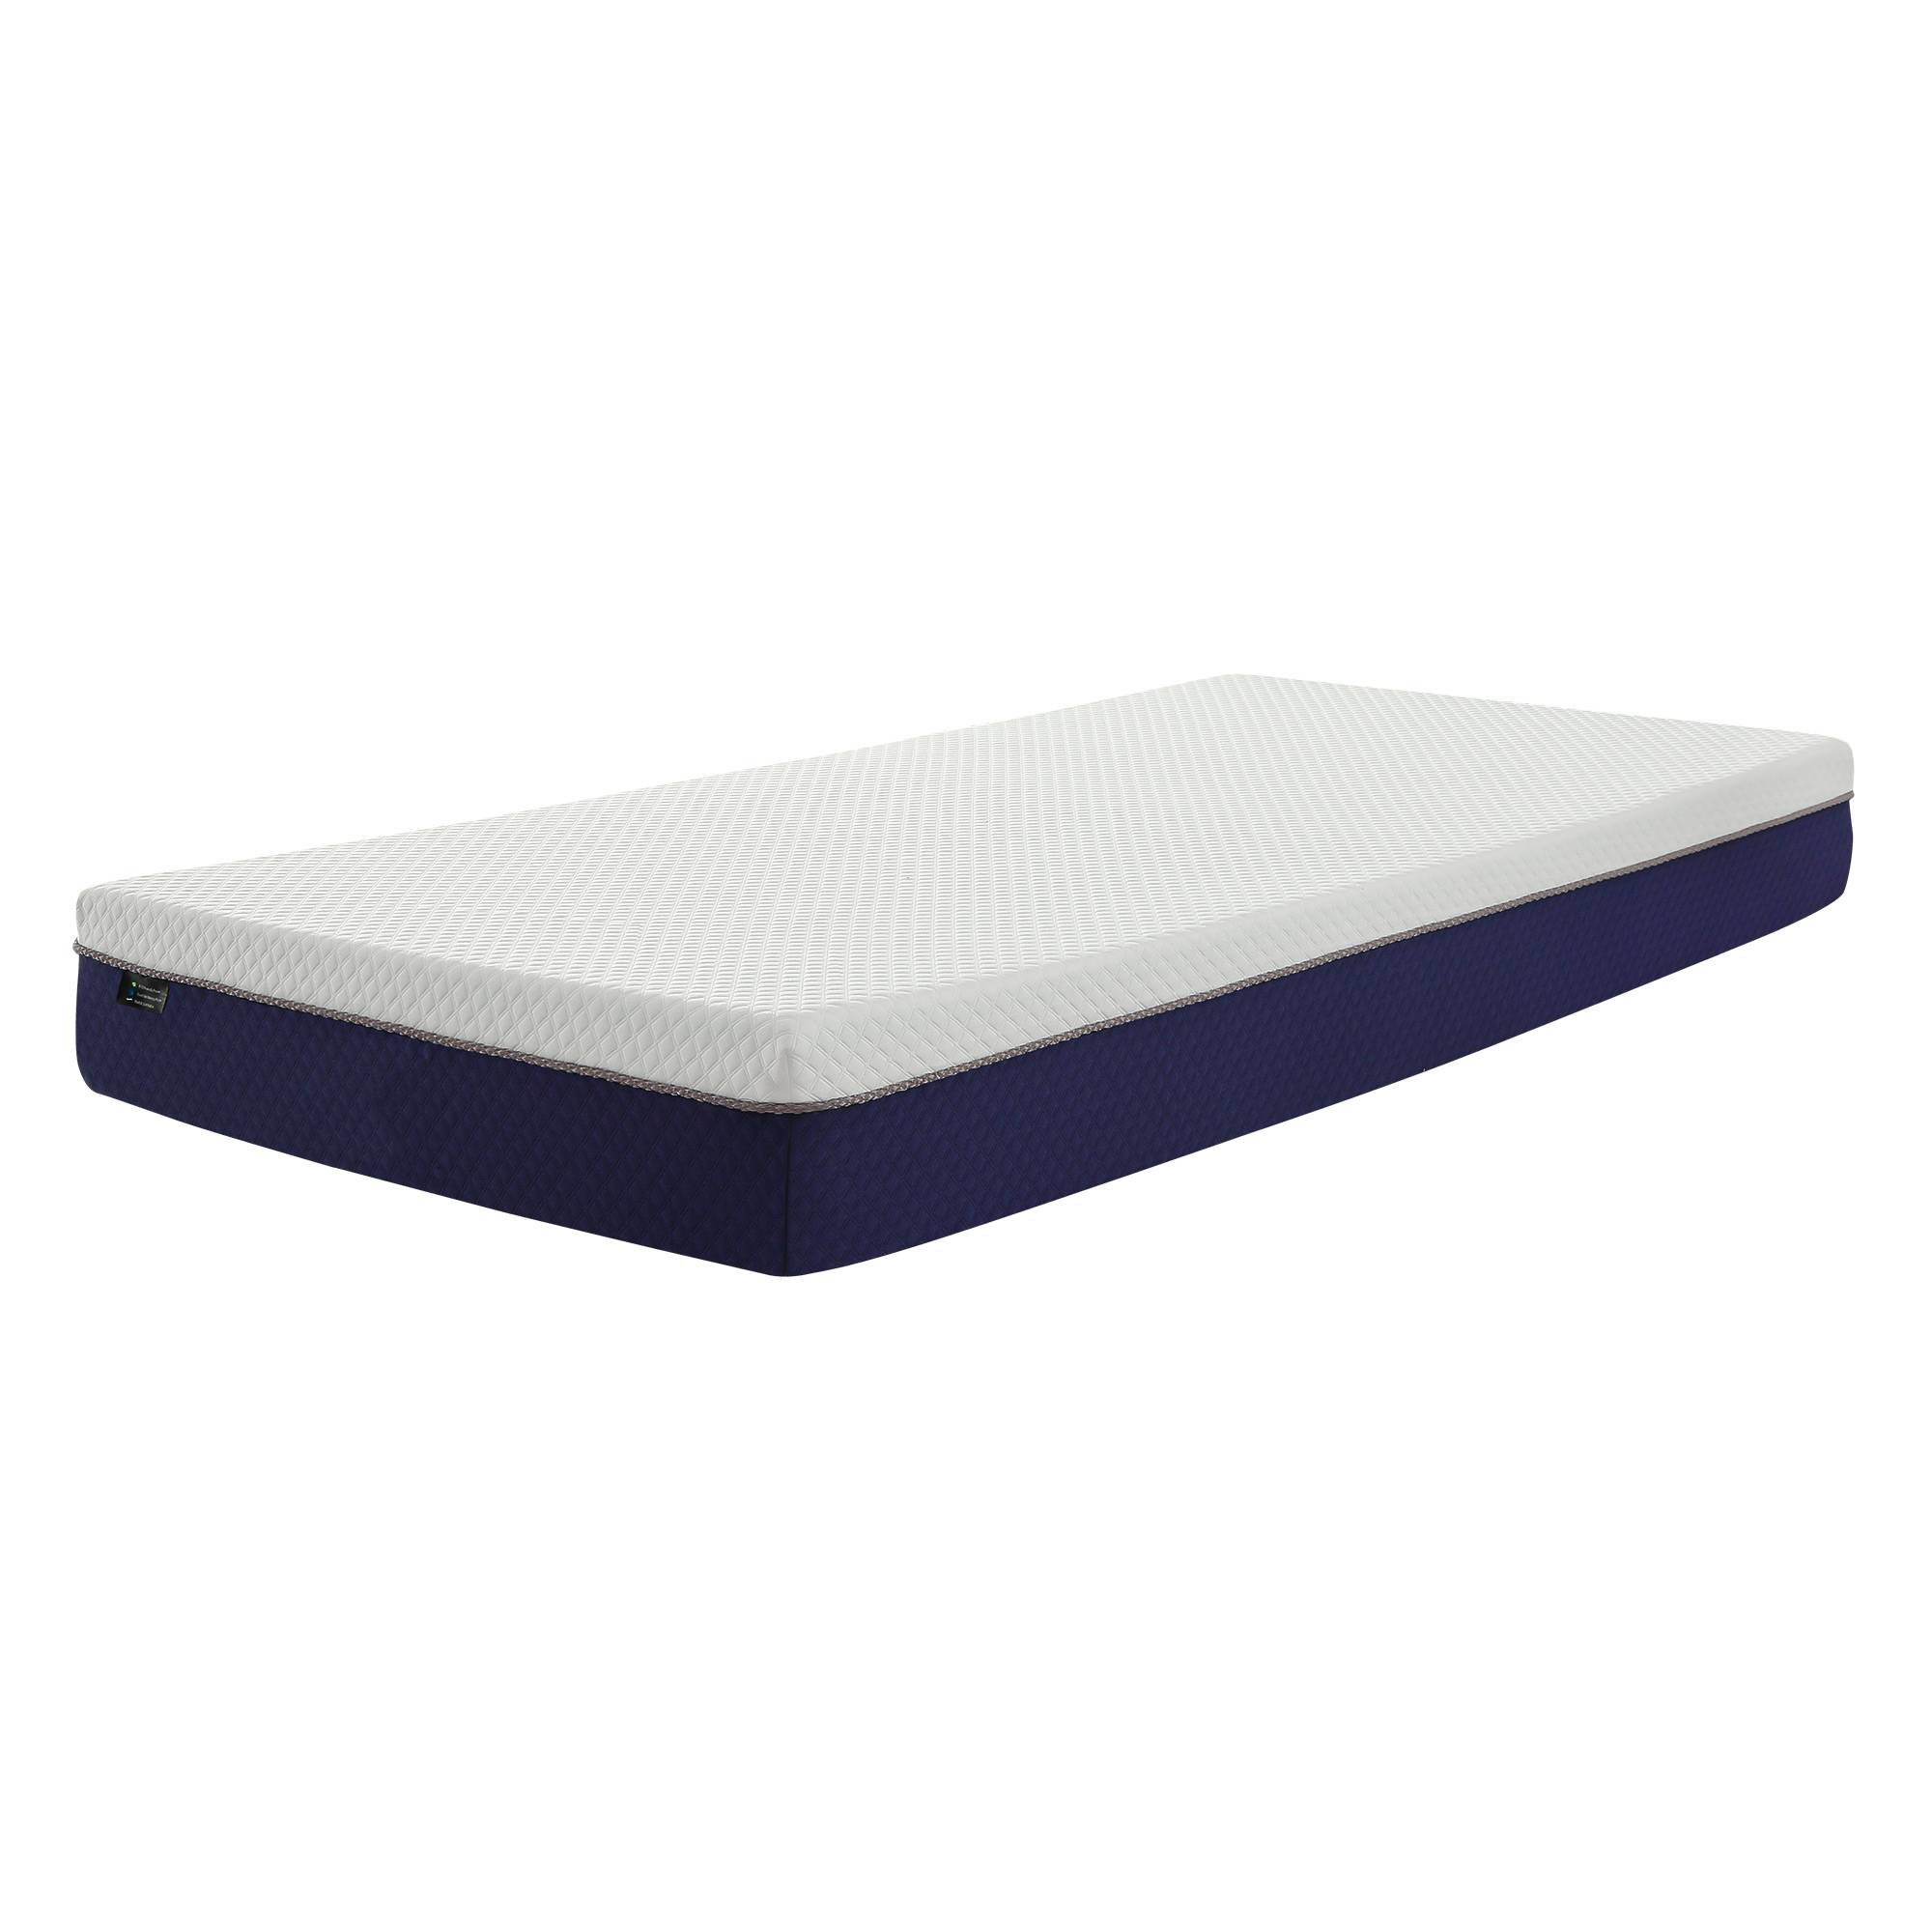 10″ Confort Memory Foam Mattress Featured Image